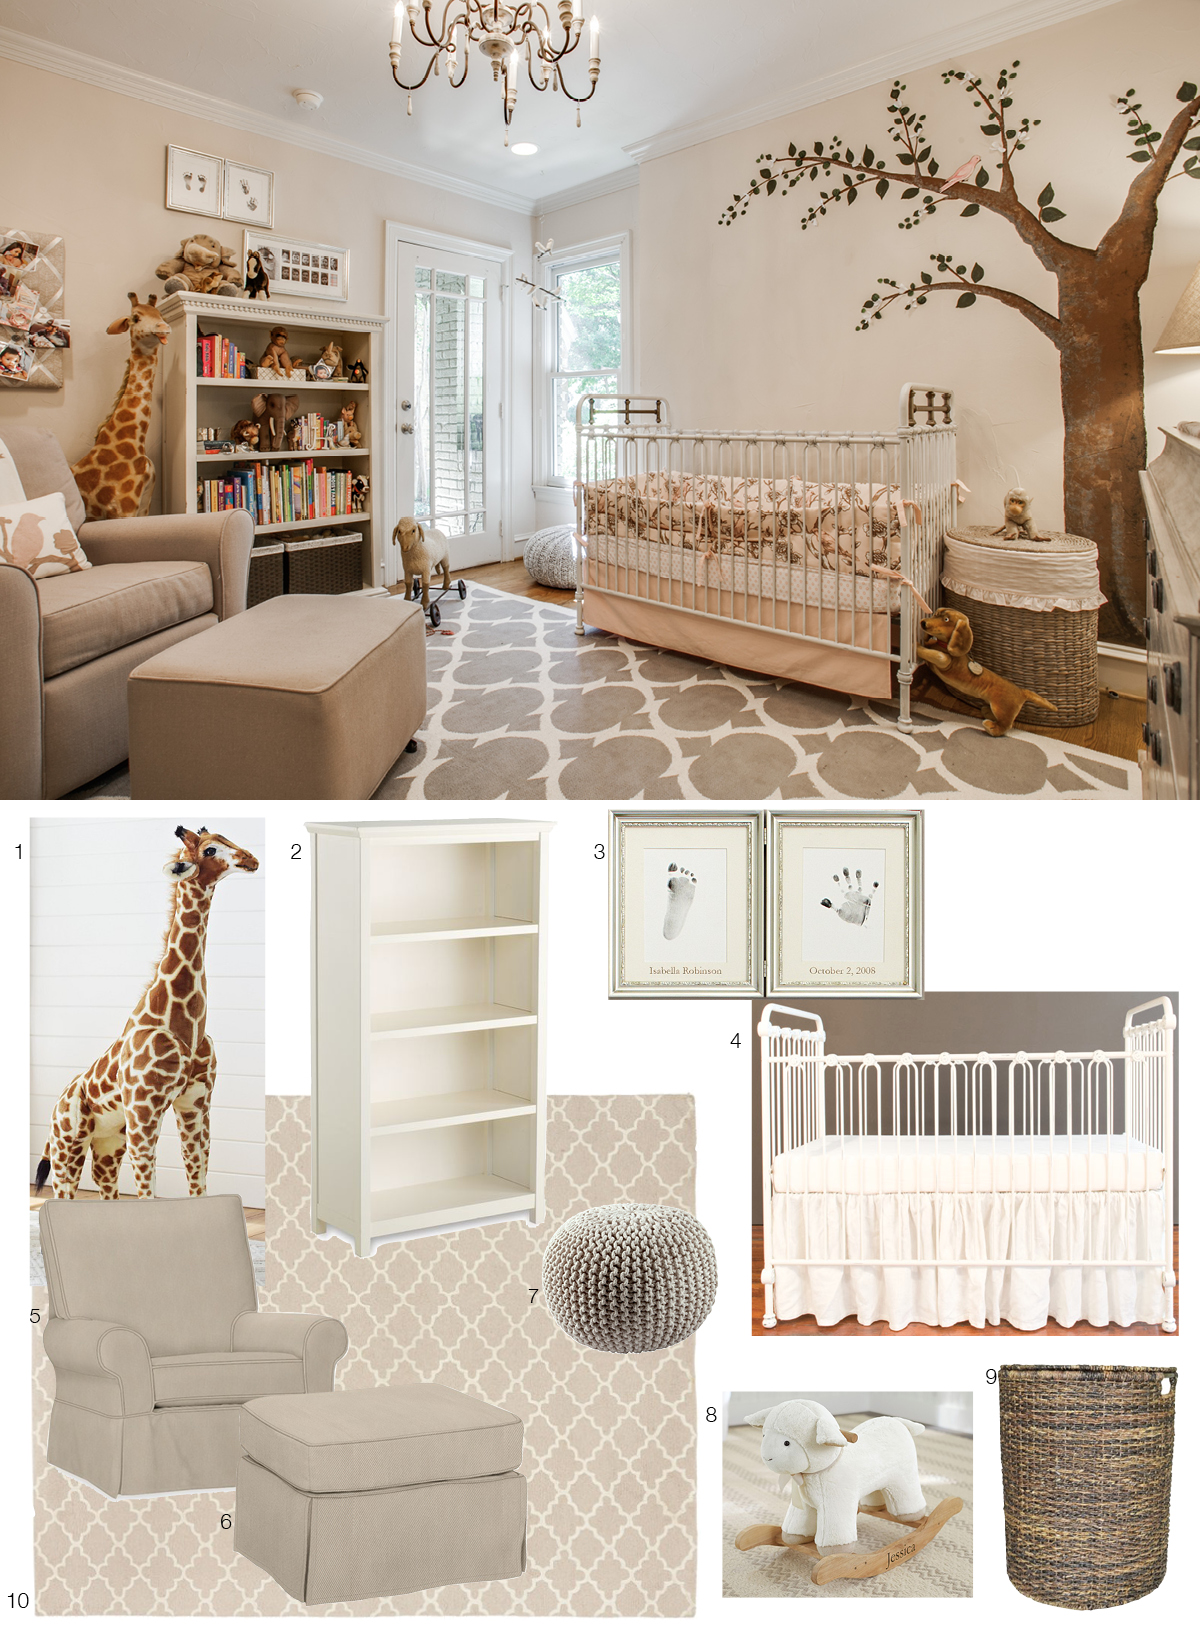 Room Re-do: Sweet, Serene Nursery